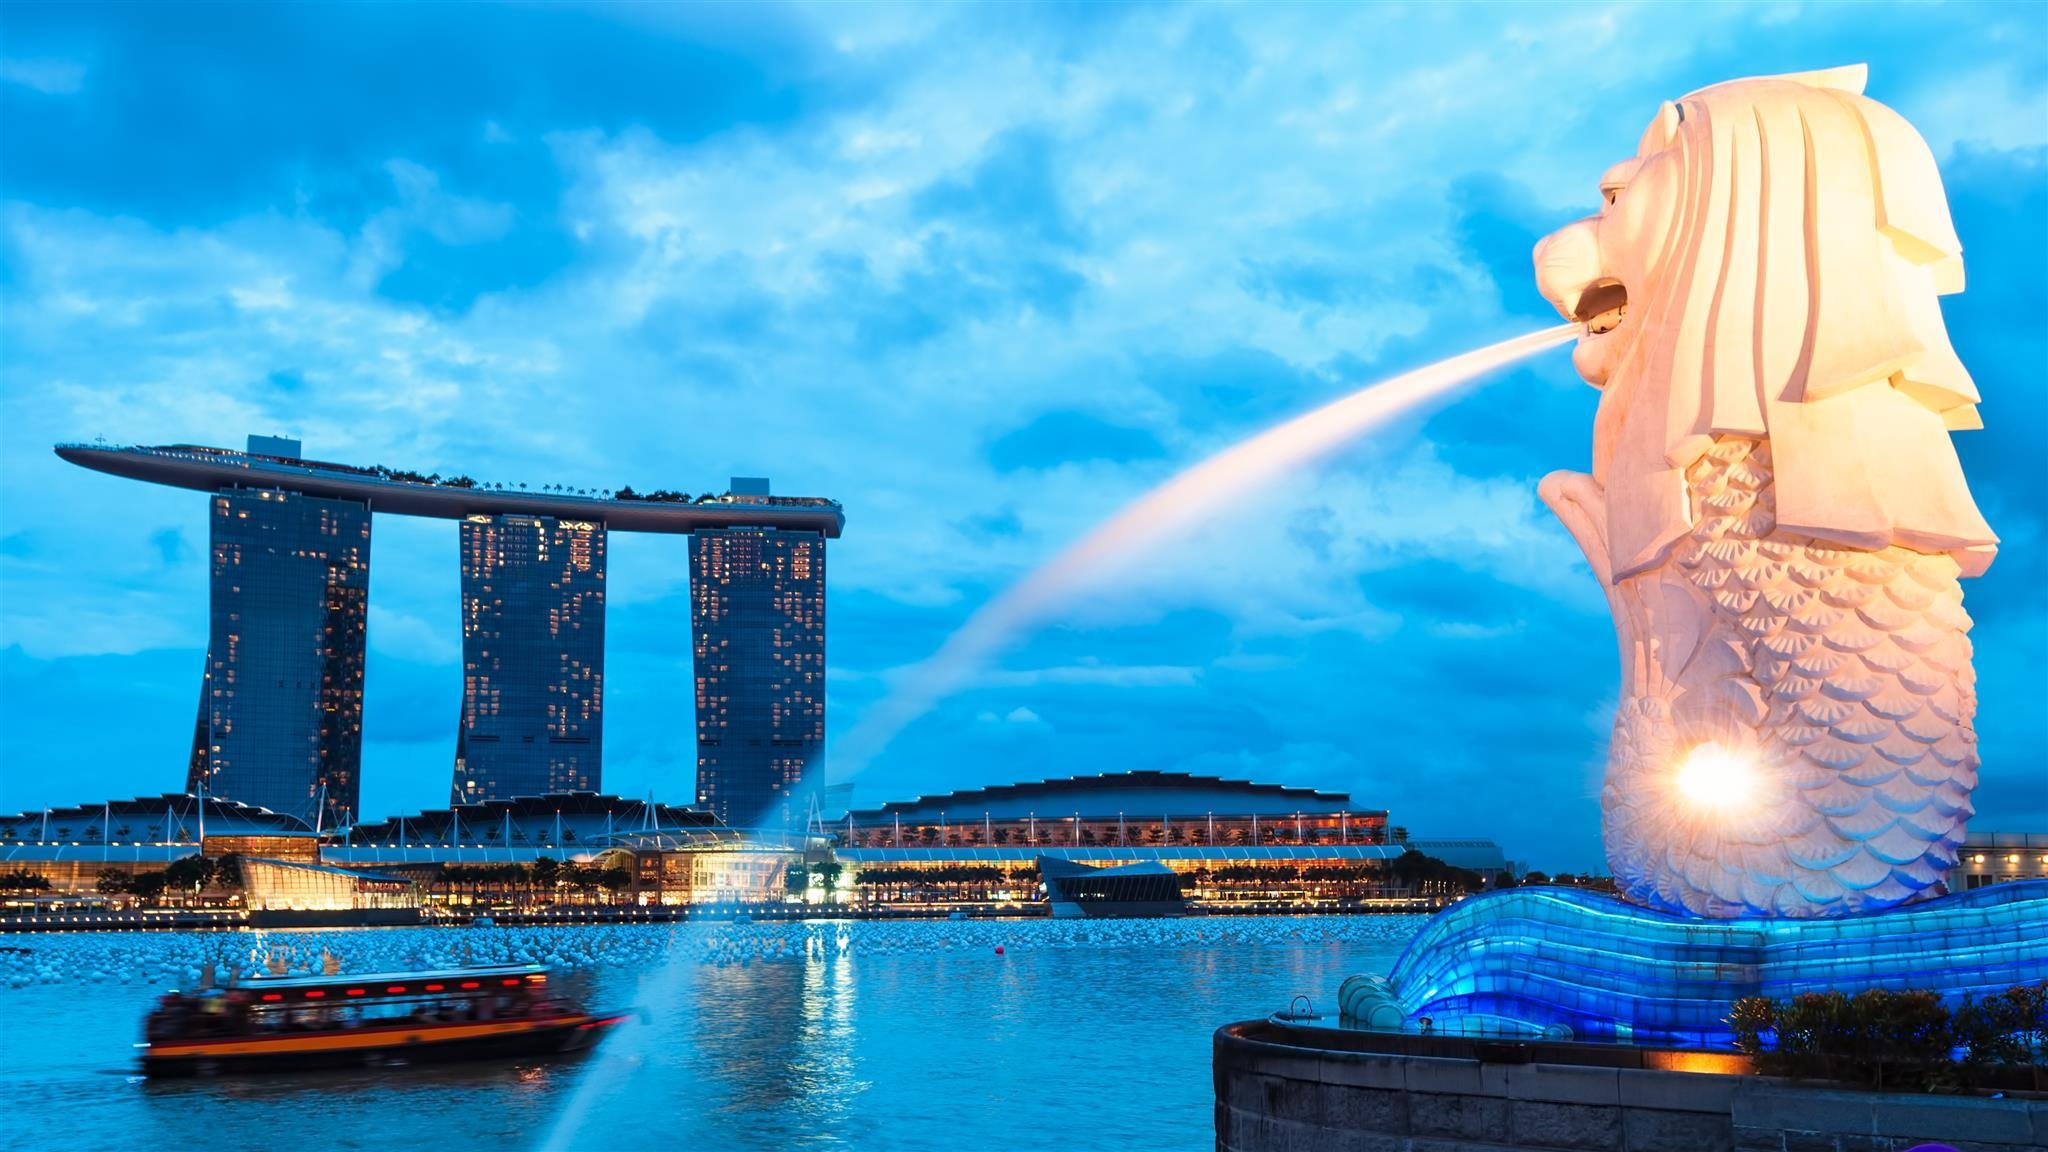 10 Best Singapore Hotels Hd Photos Reviews Of Hotels In